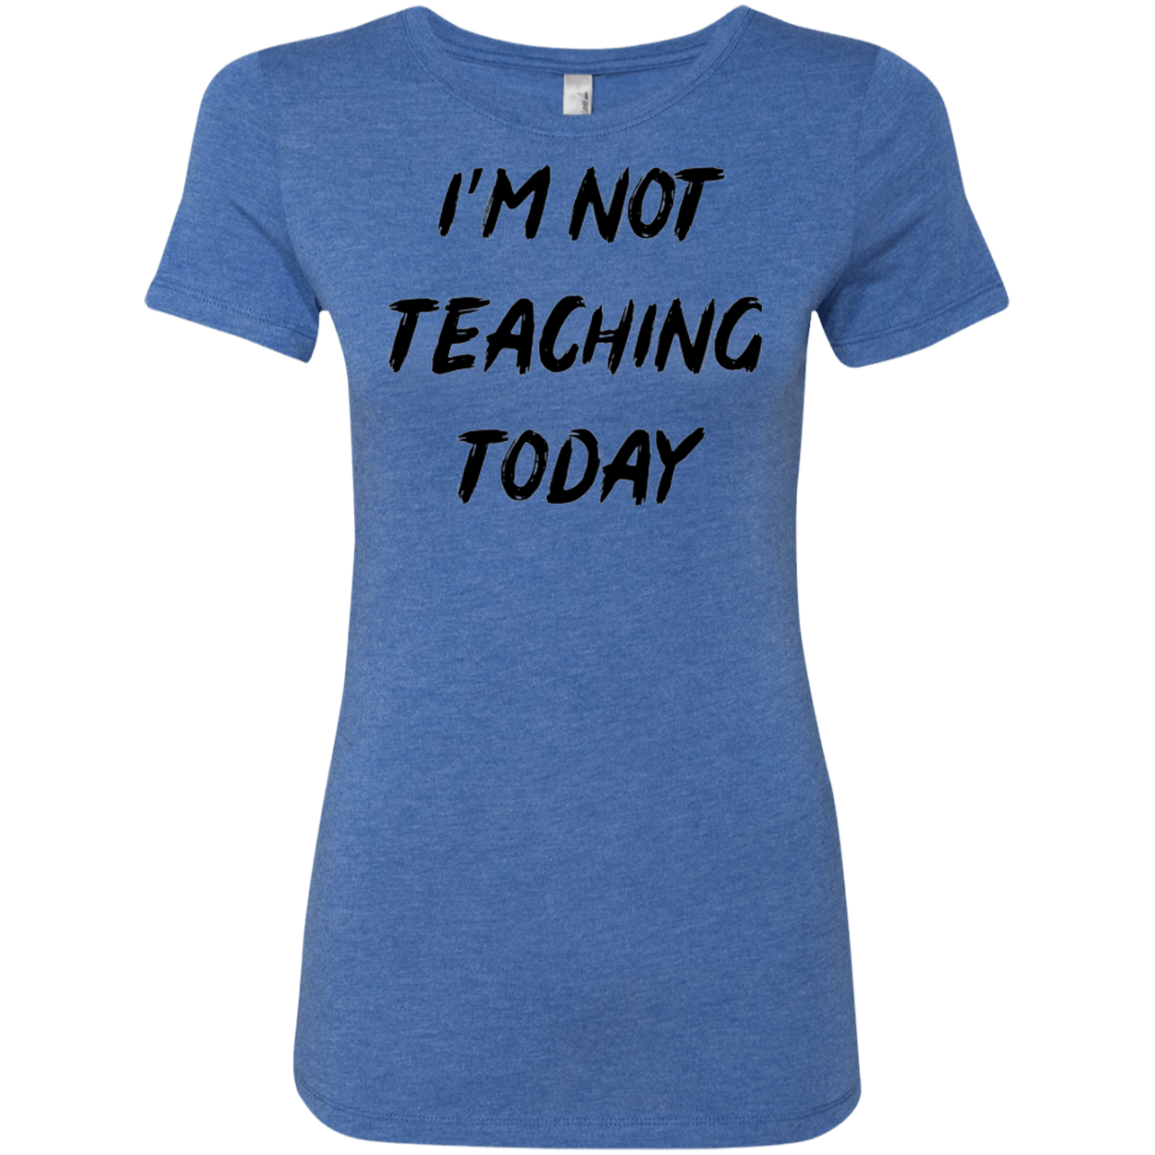 I'm Not Teaching Today Women's Classic Tee - Trendy Tees